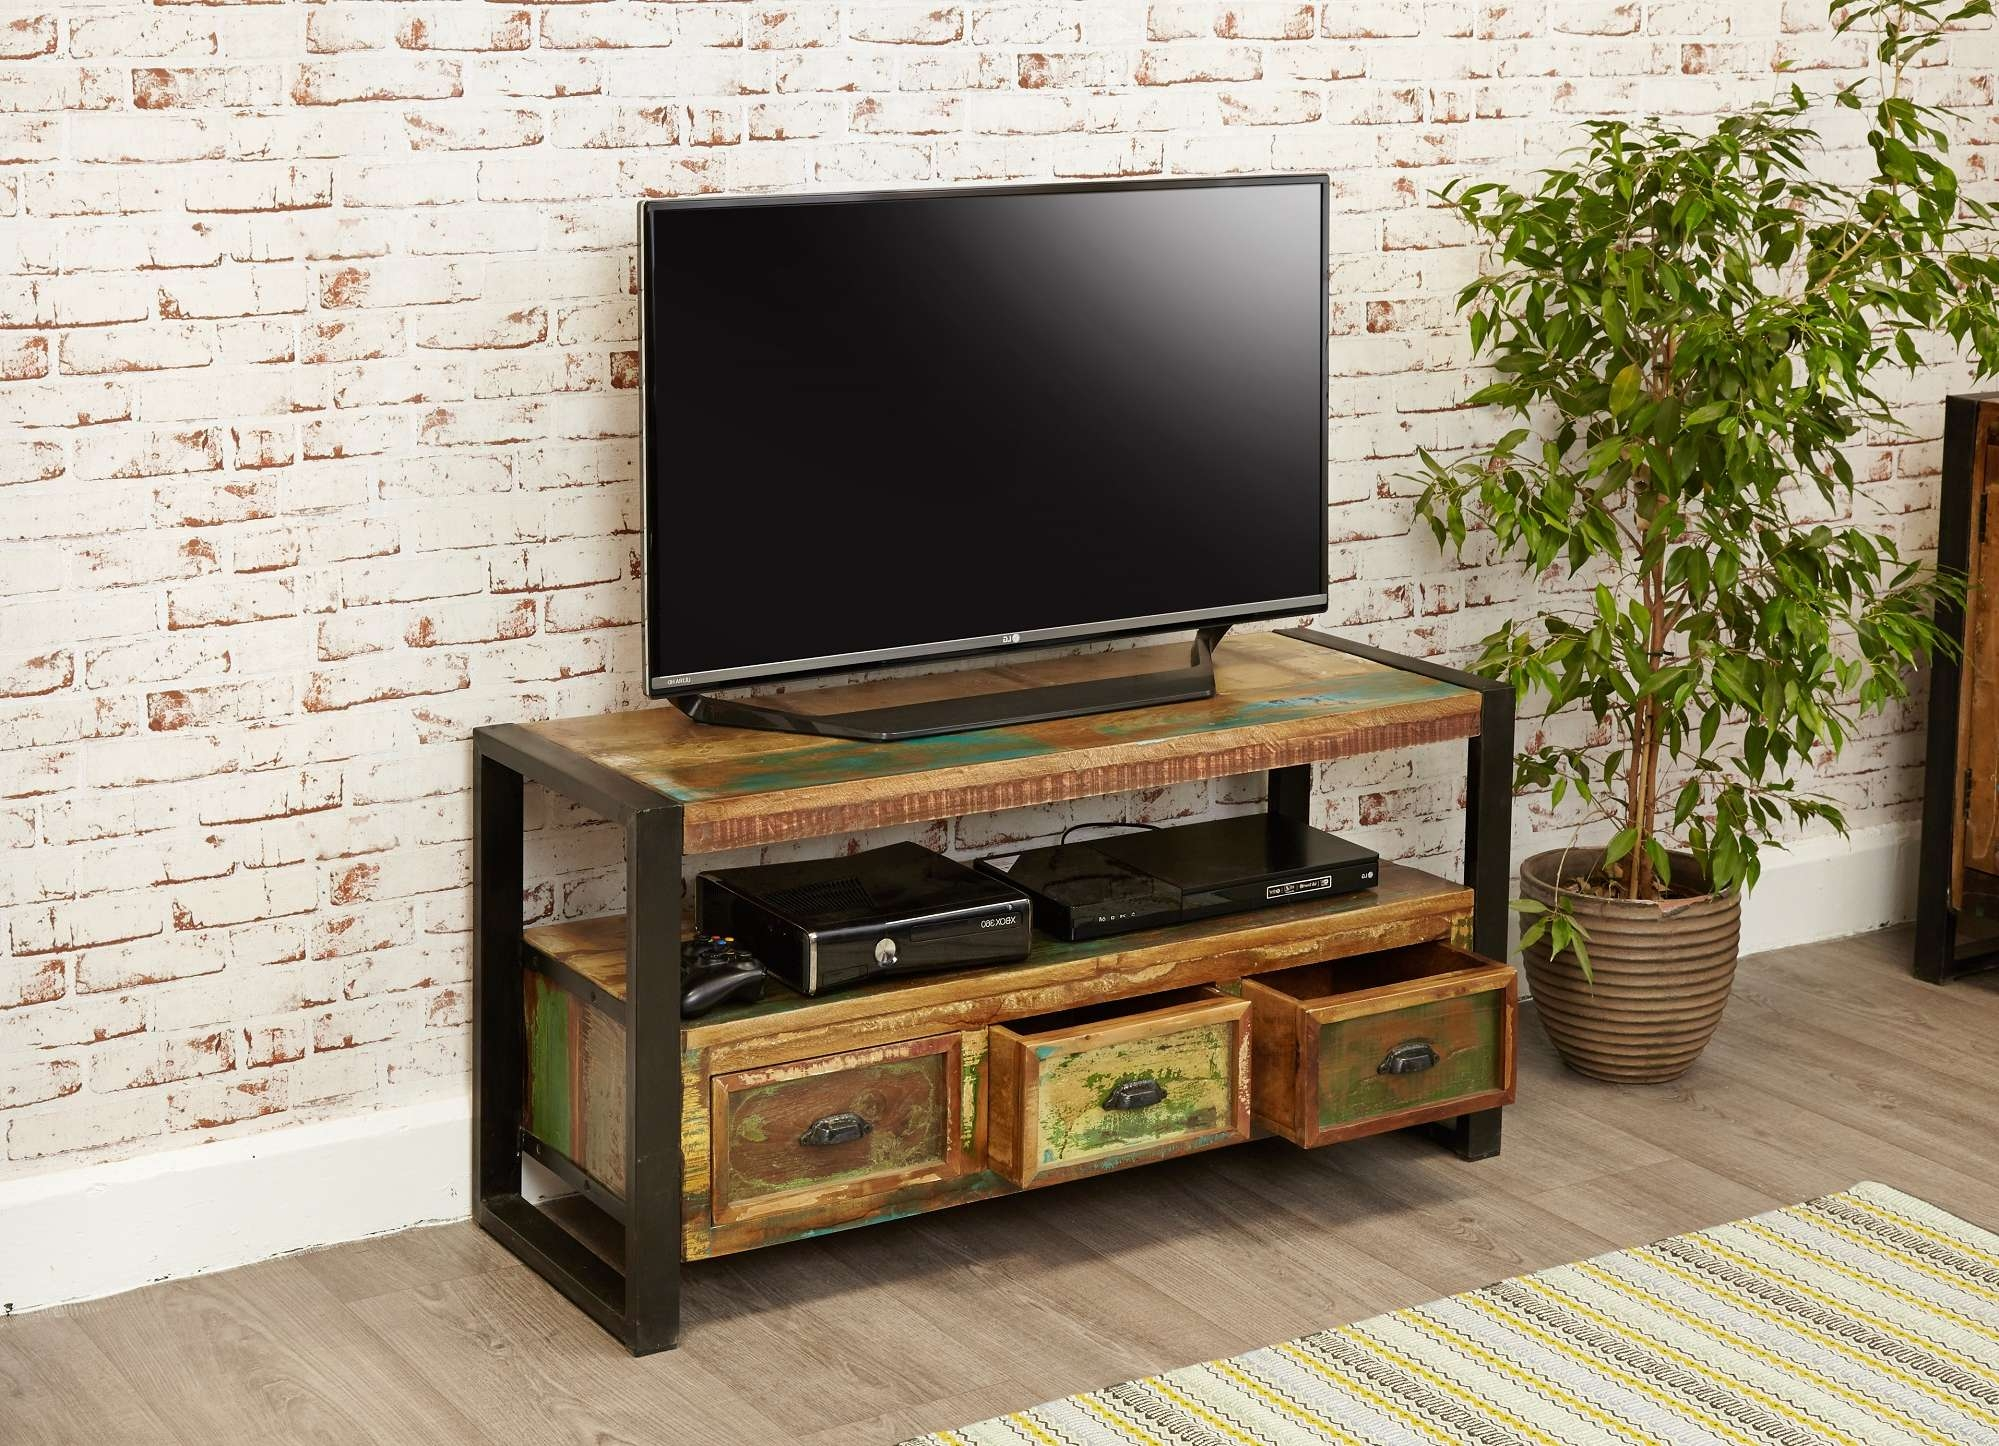 Industrial Chic Widescreen Television Cabinet | Hampshire Furniture For Widescreen Tv Cabinets (View 14 of 20)